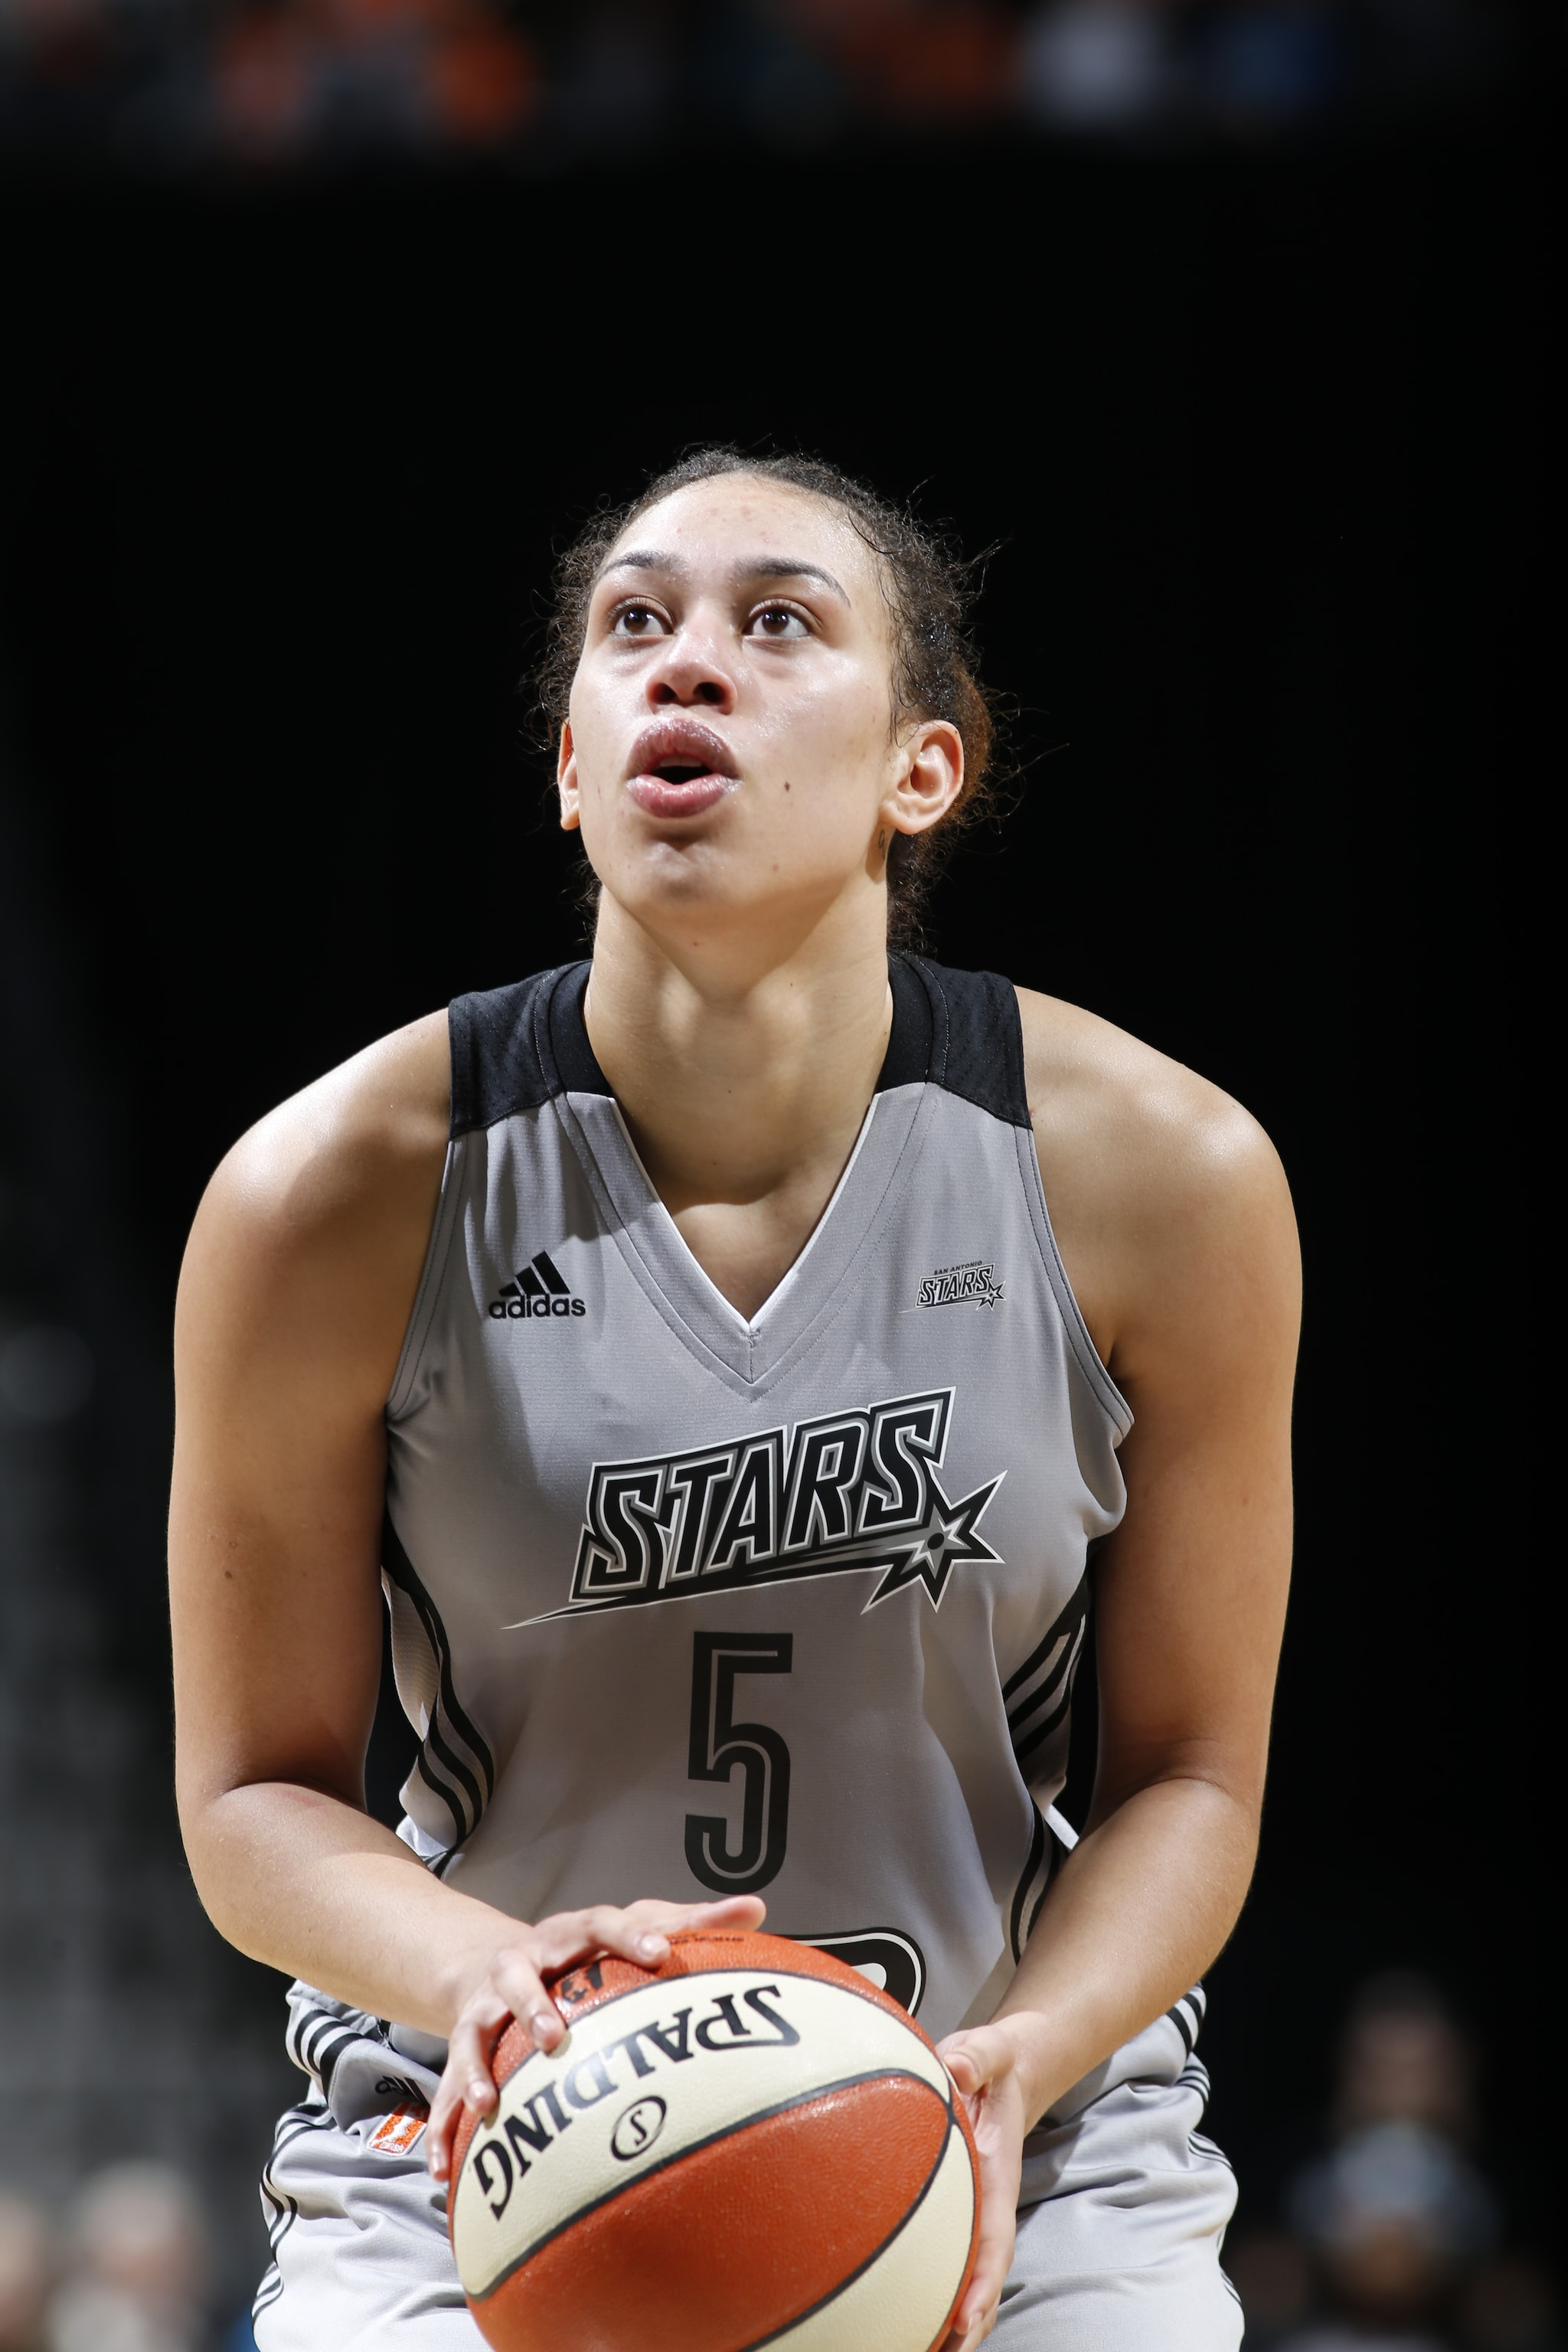 SAN ANTONIO, TX - MAY 19: Dearica Hamby #5 of the San Antonio Stars shoots a free throw against the Connecticut Sun on May 19, 2016 at AT&T Center in San Antonio, Texas. NOTE TO USER: User expressly acknowledges and agrees that, by downloading and or using this Photograph, user is consenting to the terms and conditions of the Getty Images License Agreement. Mandatory Copyright Notice: Copyright 2016 NBAE (Photo by Chris Covatta/NBAE via Getty Images)